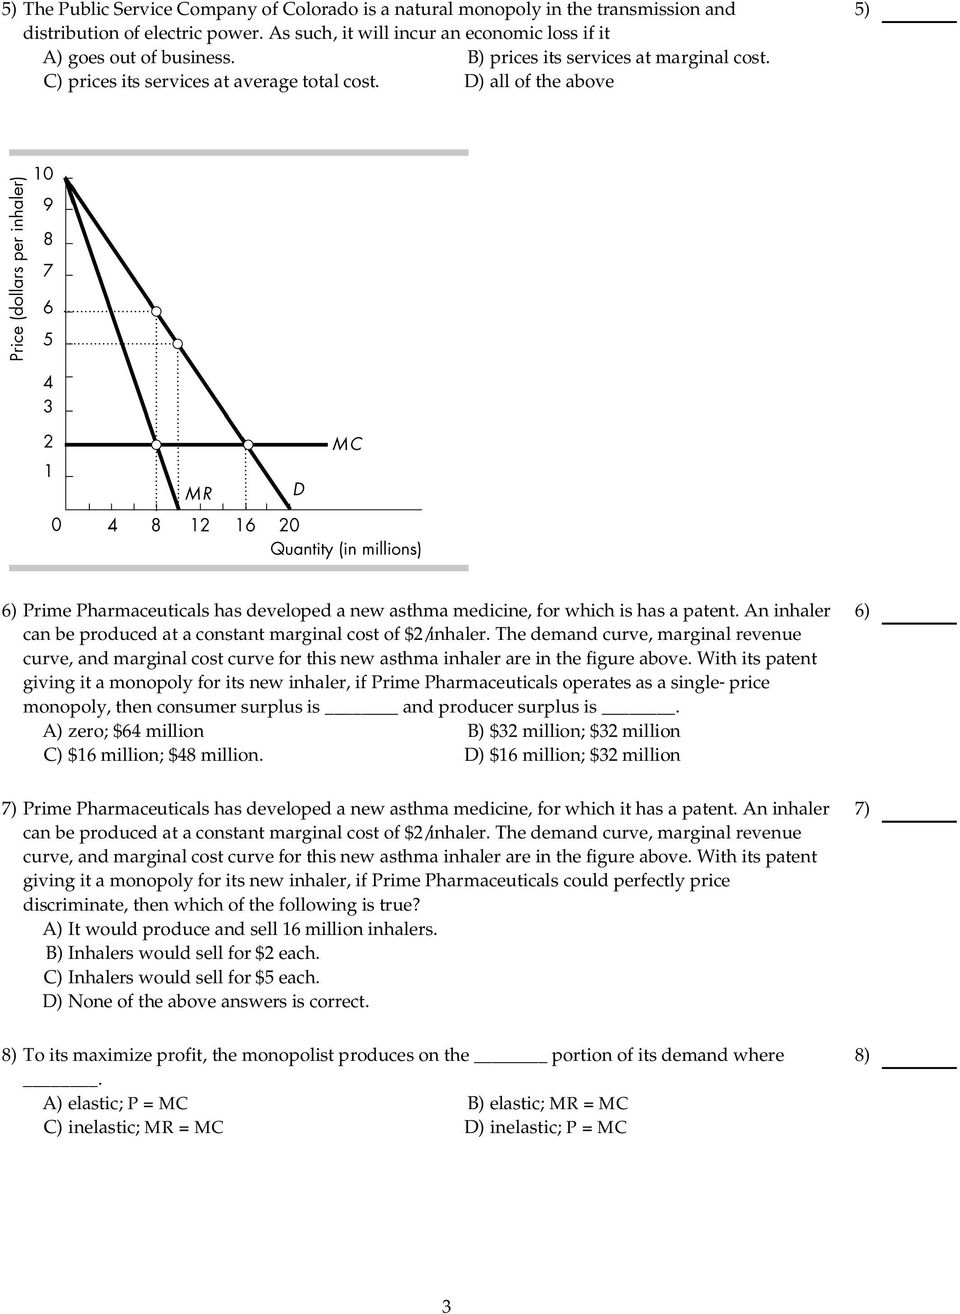 An inhaler can be produced at a constant marginal cost of $2/inhaler. The demand curve, marginal revenue curve, and marginal cost curve for this new asthma inhaler are in the figure above.